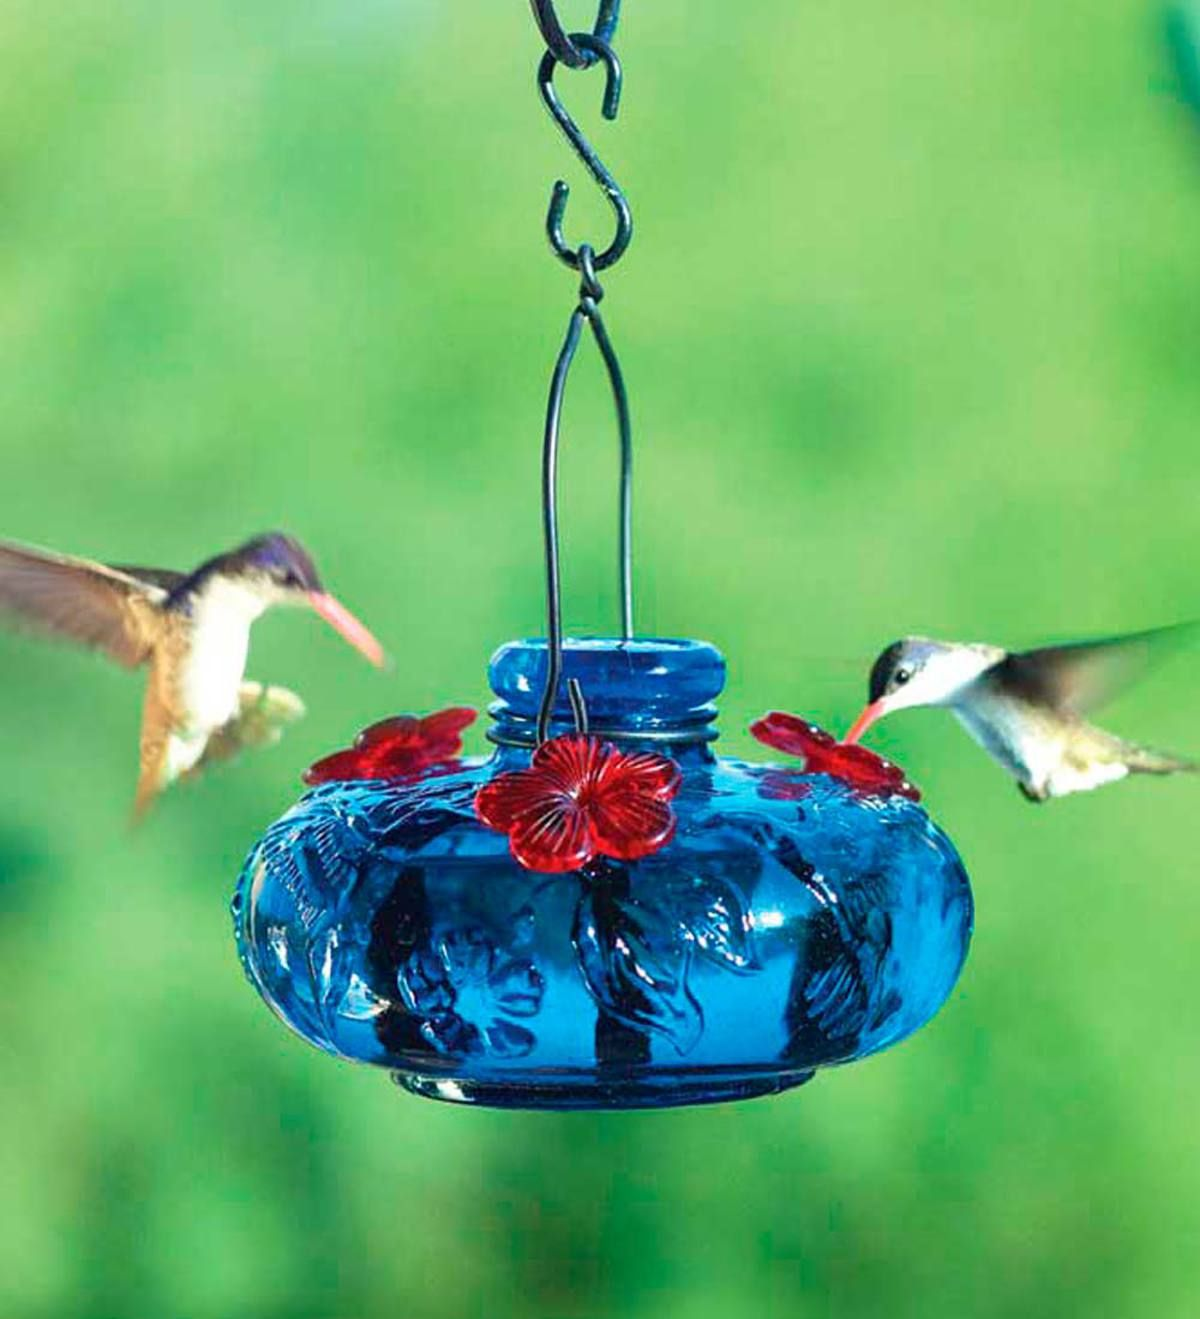 Bring your yard into bloom with this stunning Glass